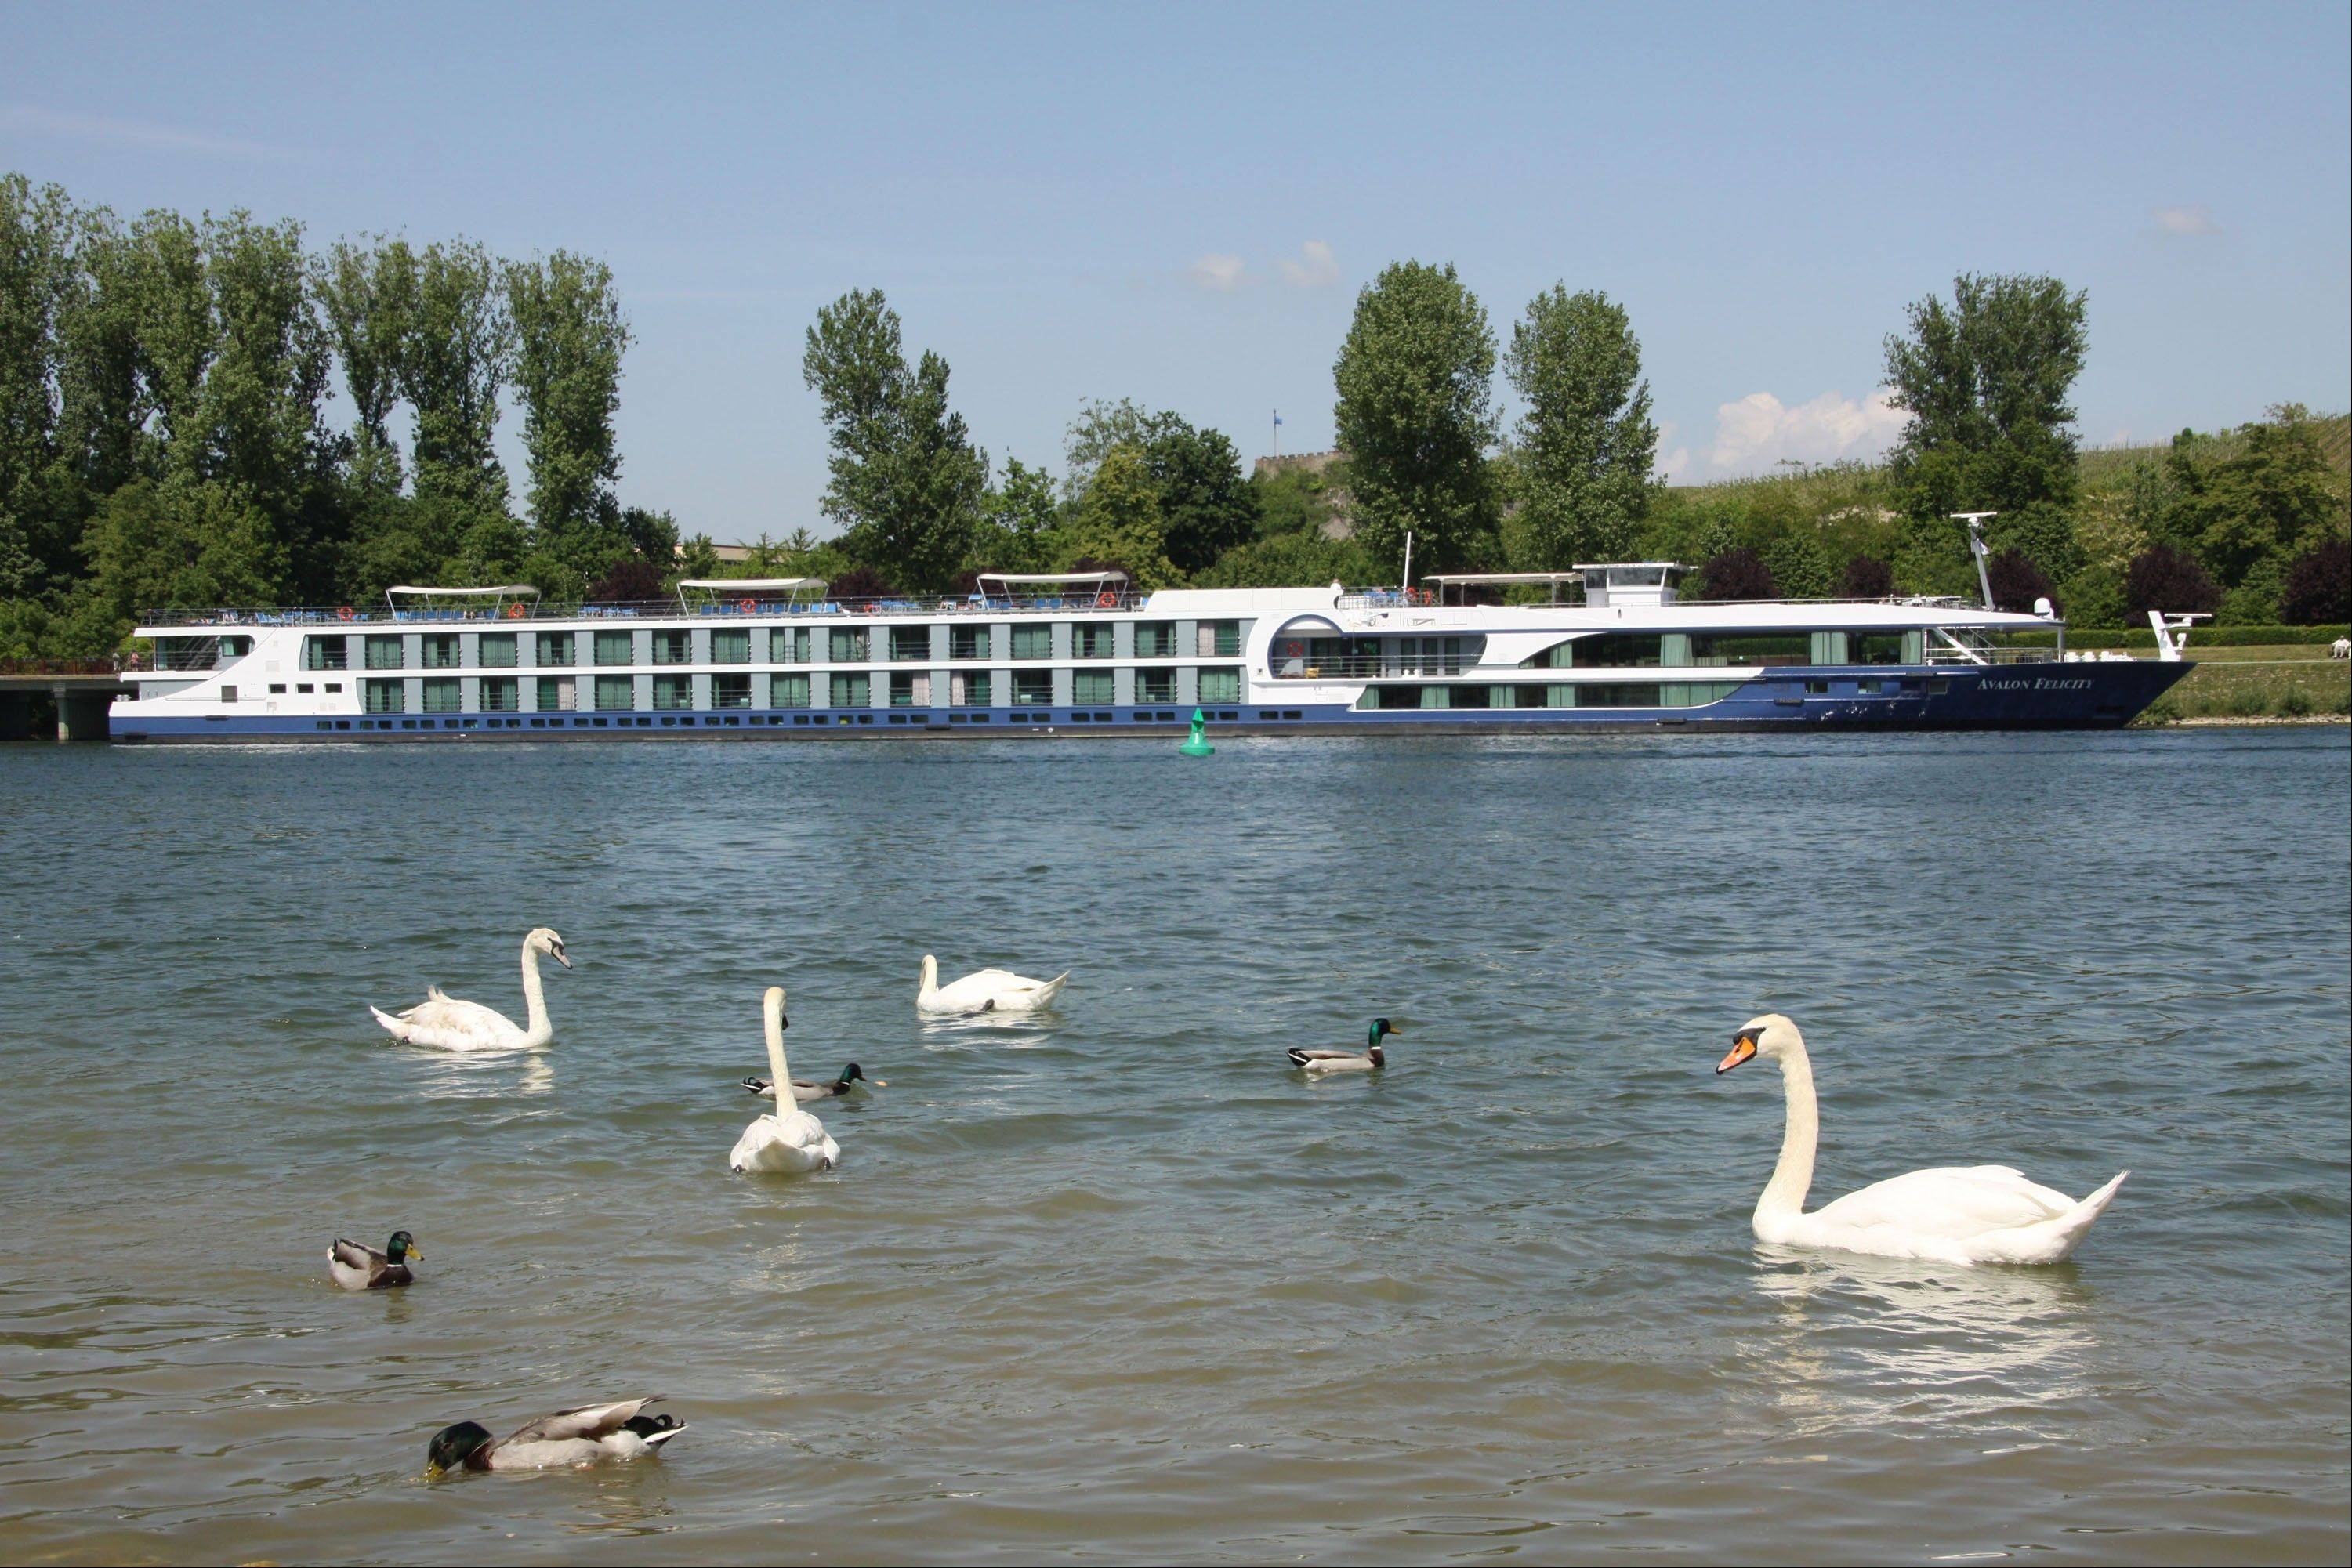 Swans and ducks wade across from the river ship Avalon Felicity on the Rhine River in Breisach, Germany. The small scale of river ships, which typically carry no more than a couple hundred passengers, is a large part of their appeal, in contrast to oceangoing mega-ships that carry thousands.